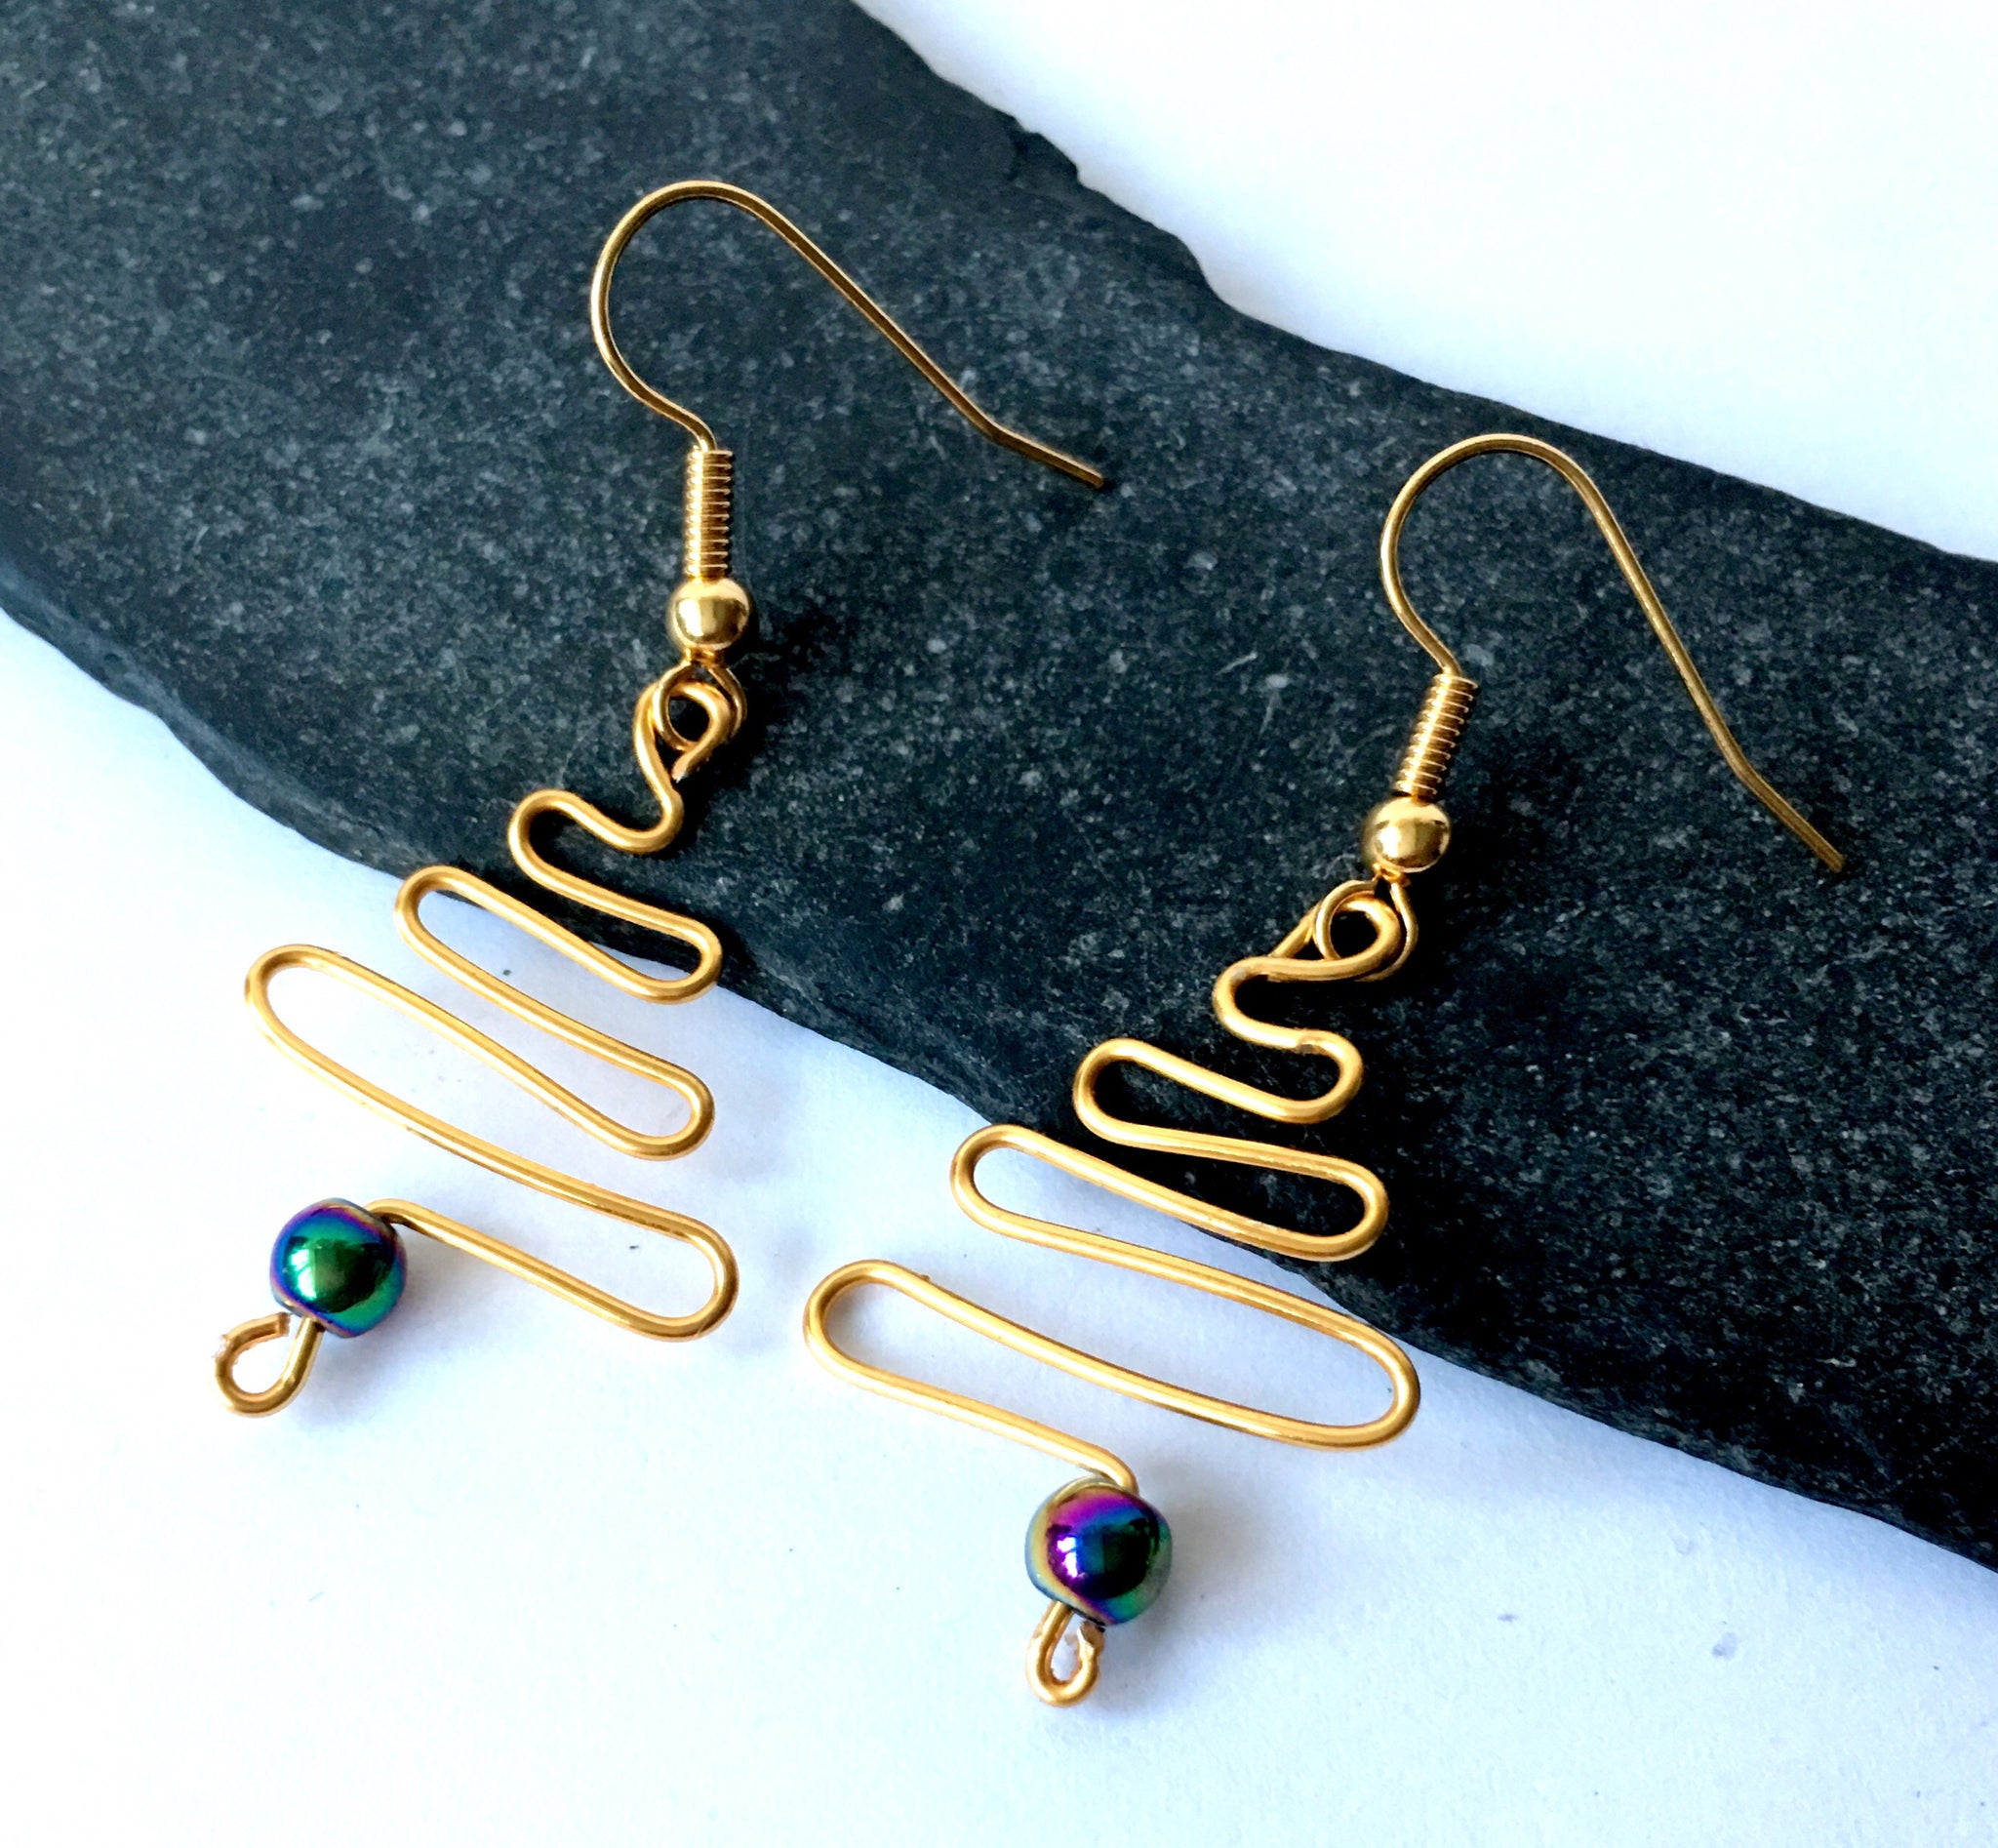 Gold plated Titanium Bead Christmas Tree Earrings - Glitter and Gem Jewellery